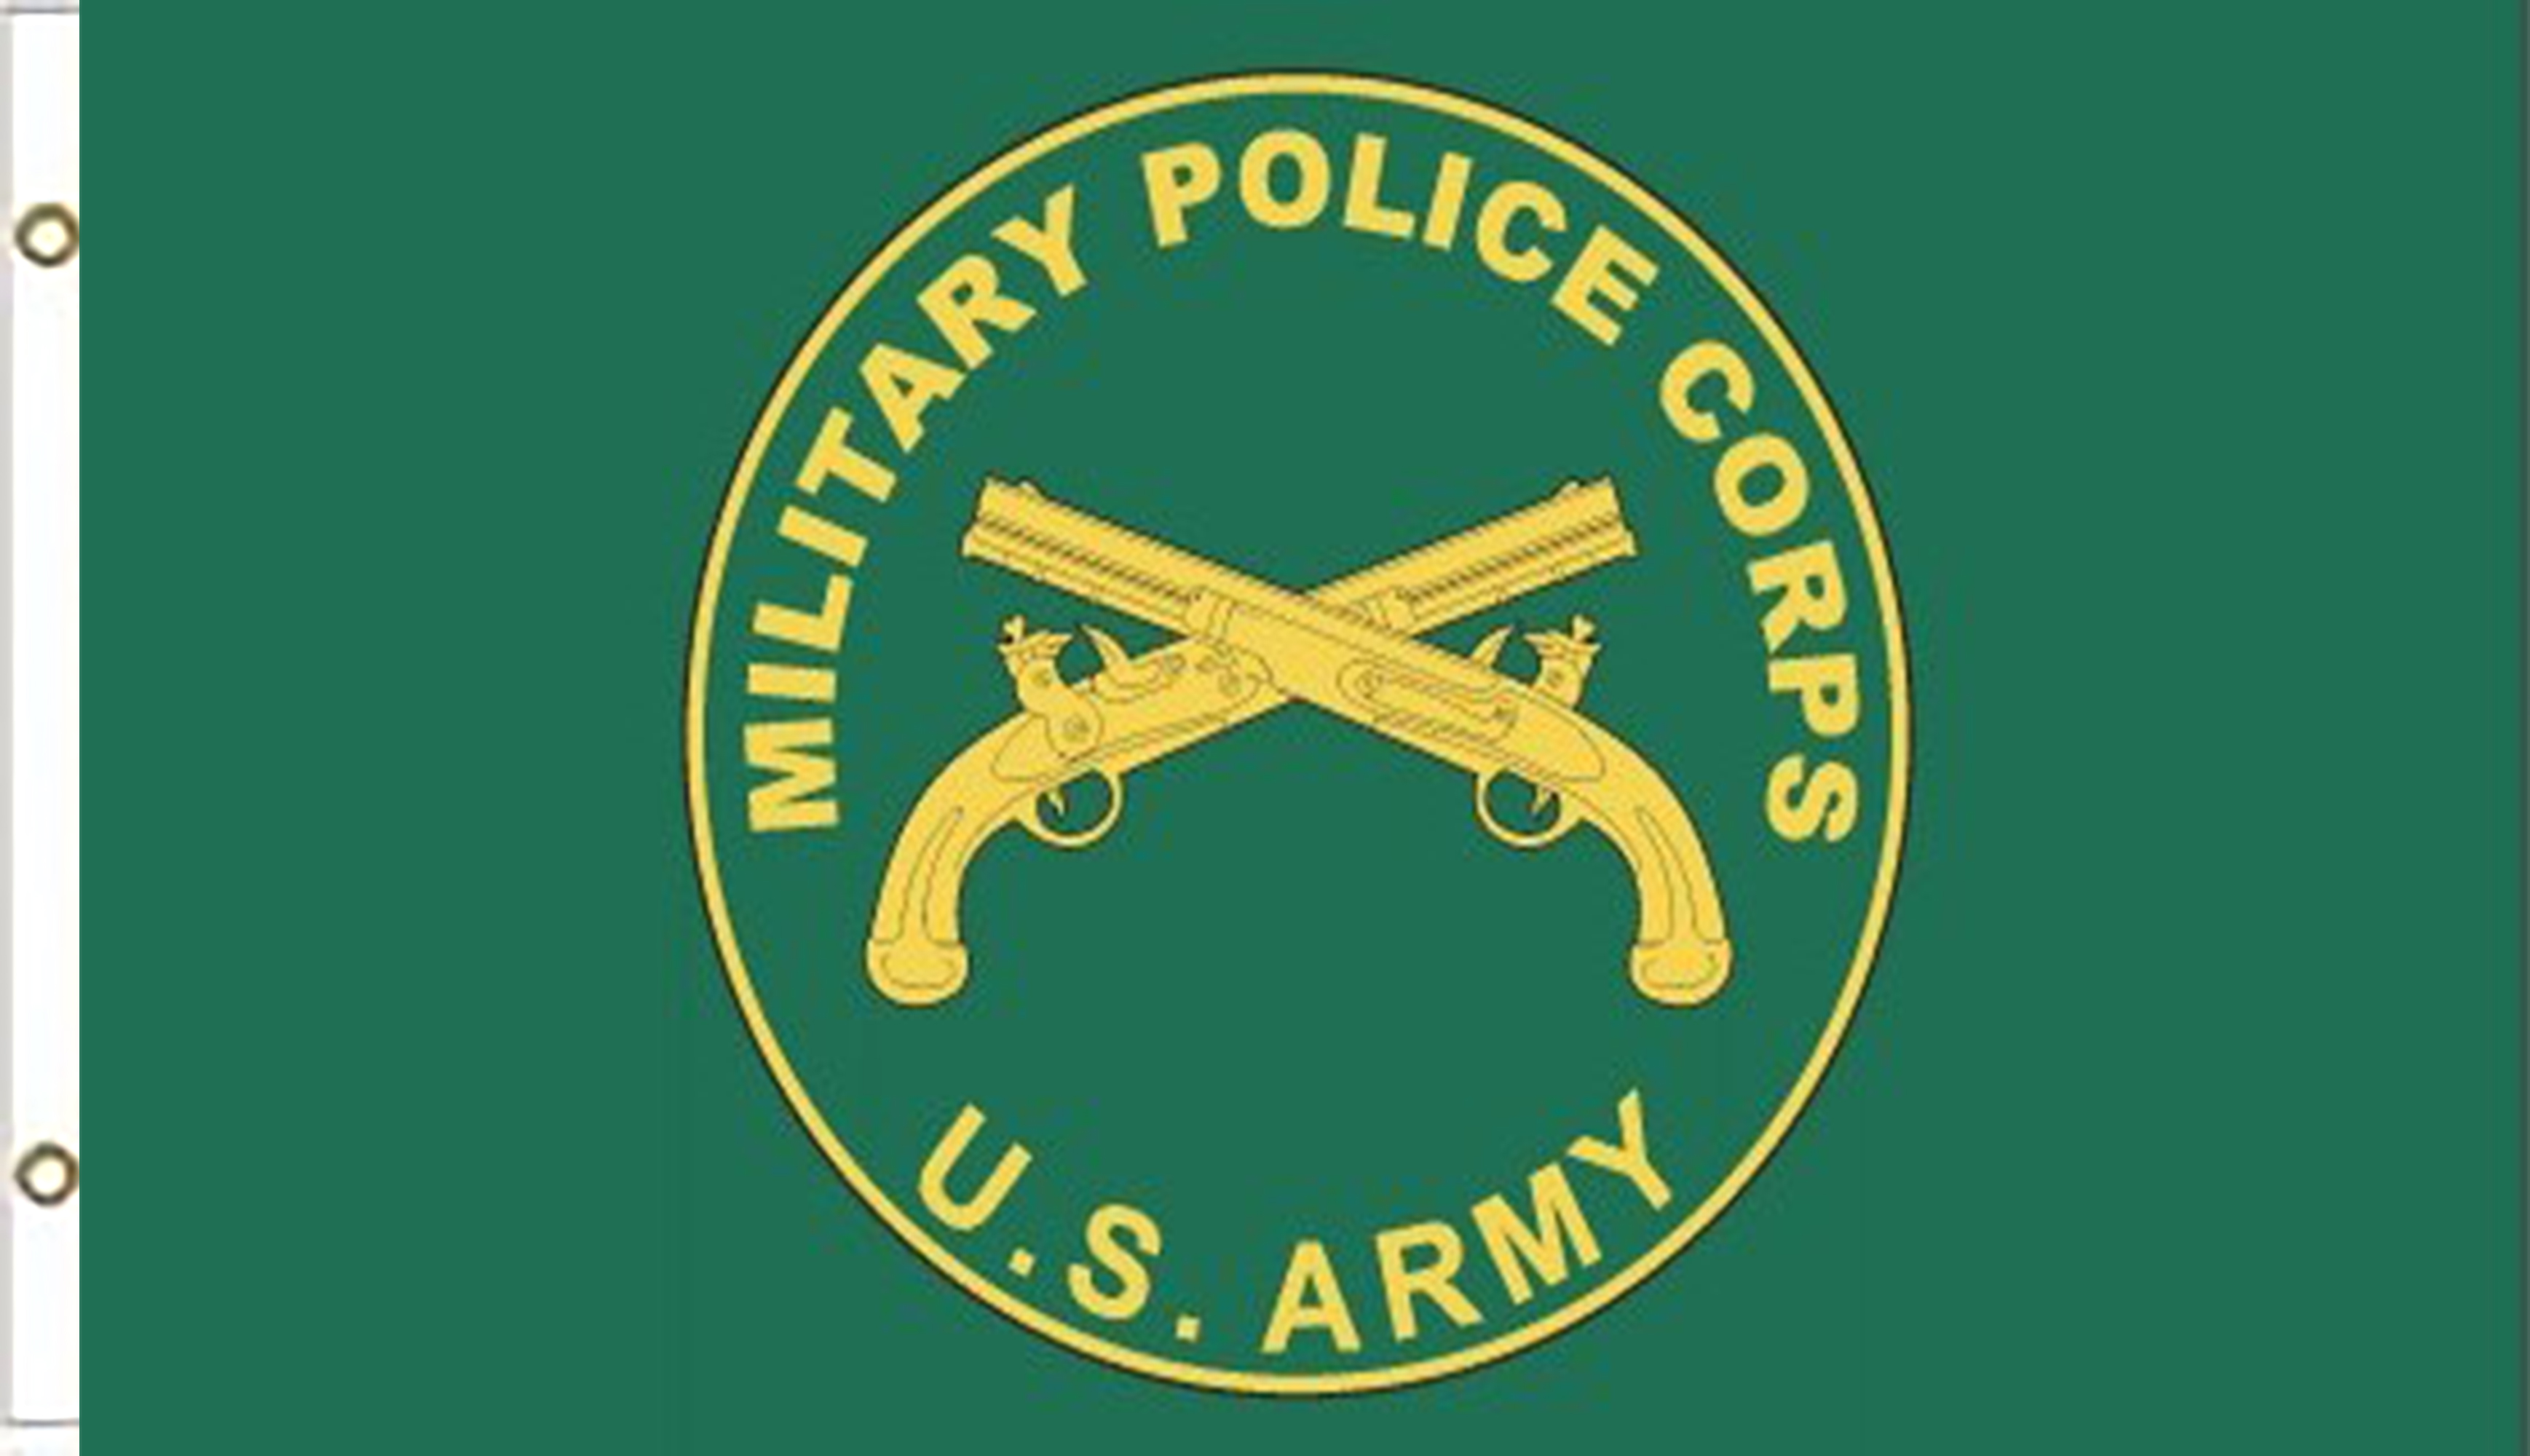 US Army Military Police Flags